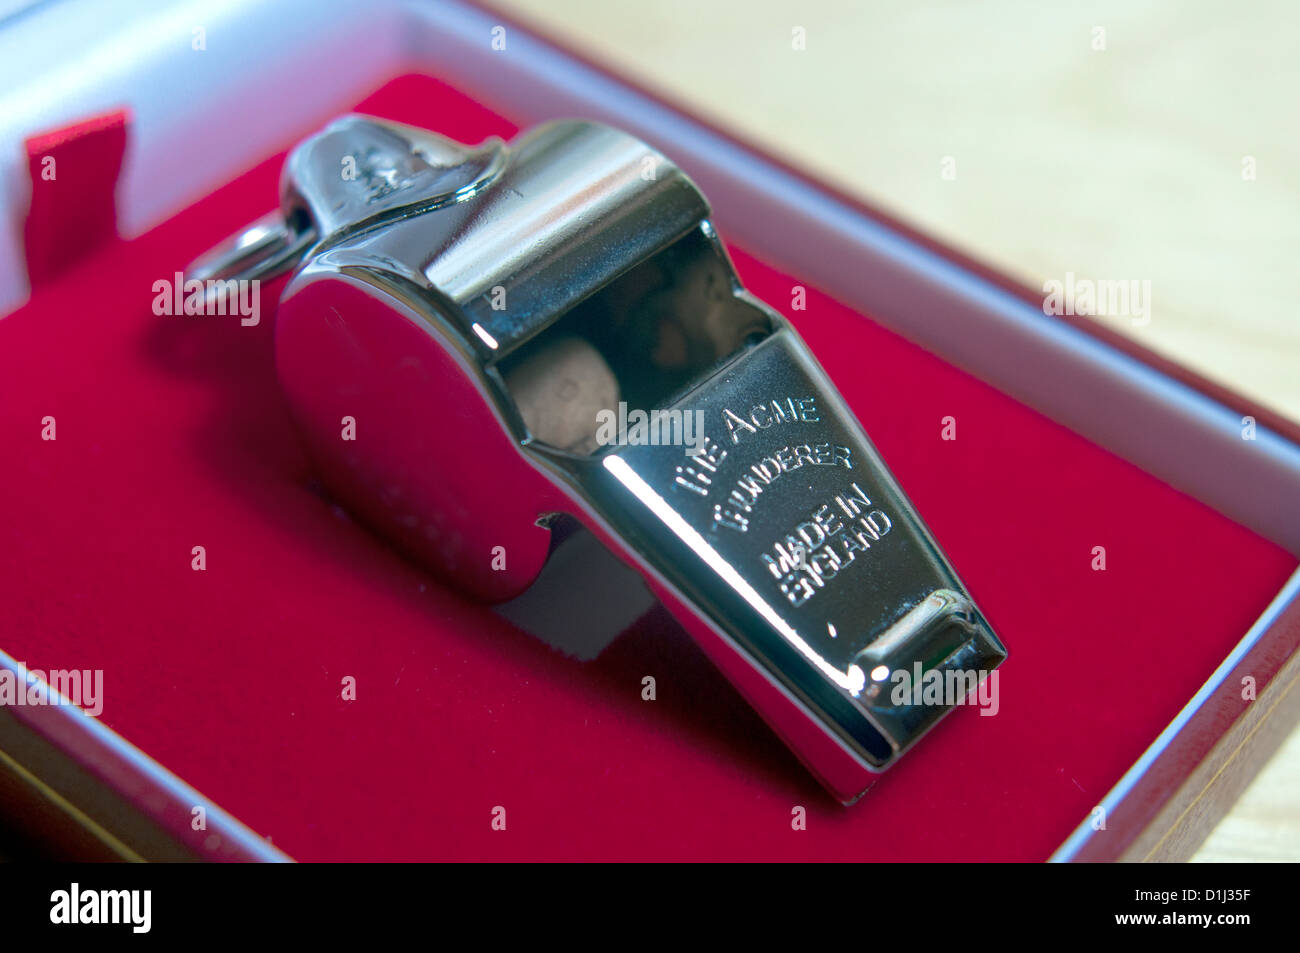 Referees metal whistle The Acme Thunderer - Stock Image